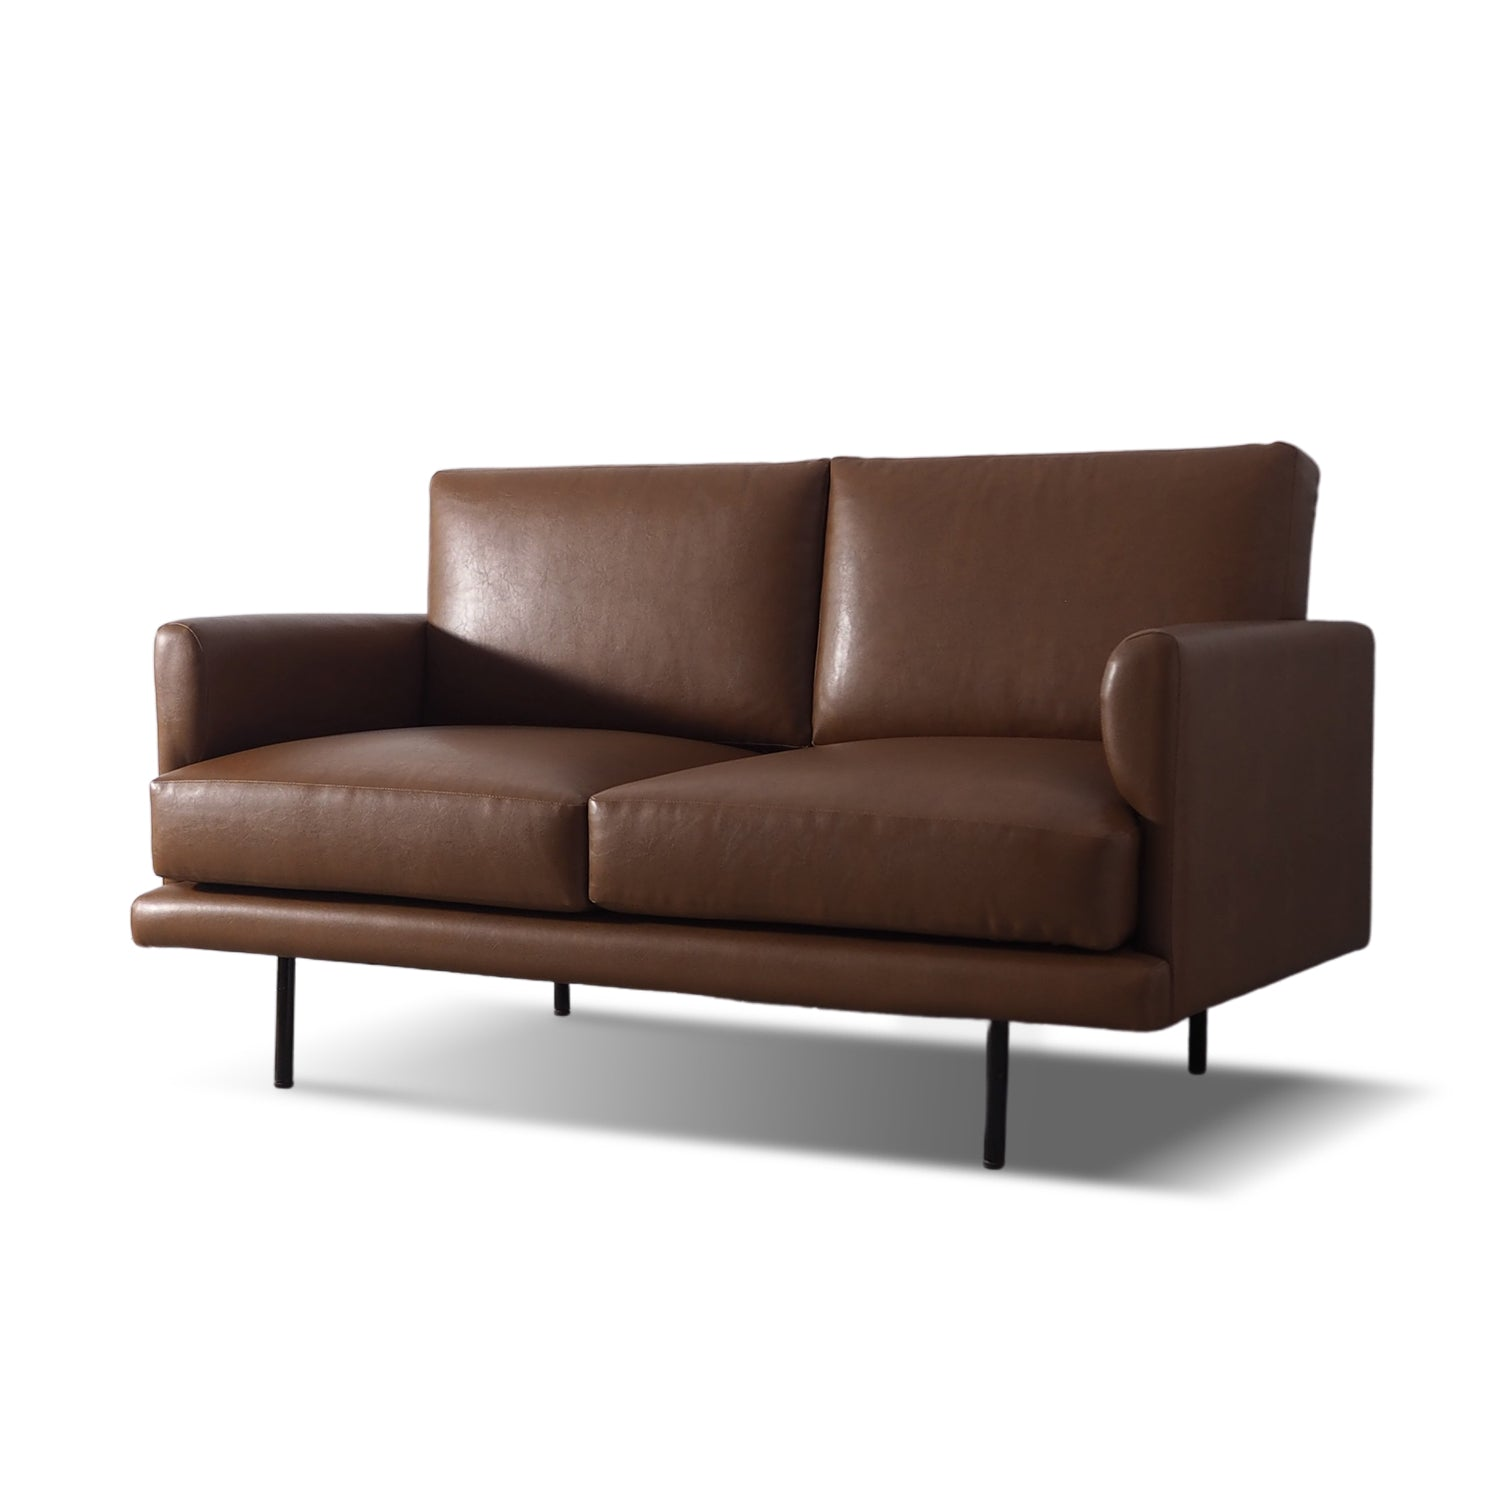 Nimase Sofa 2 Seater